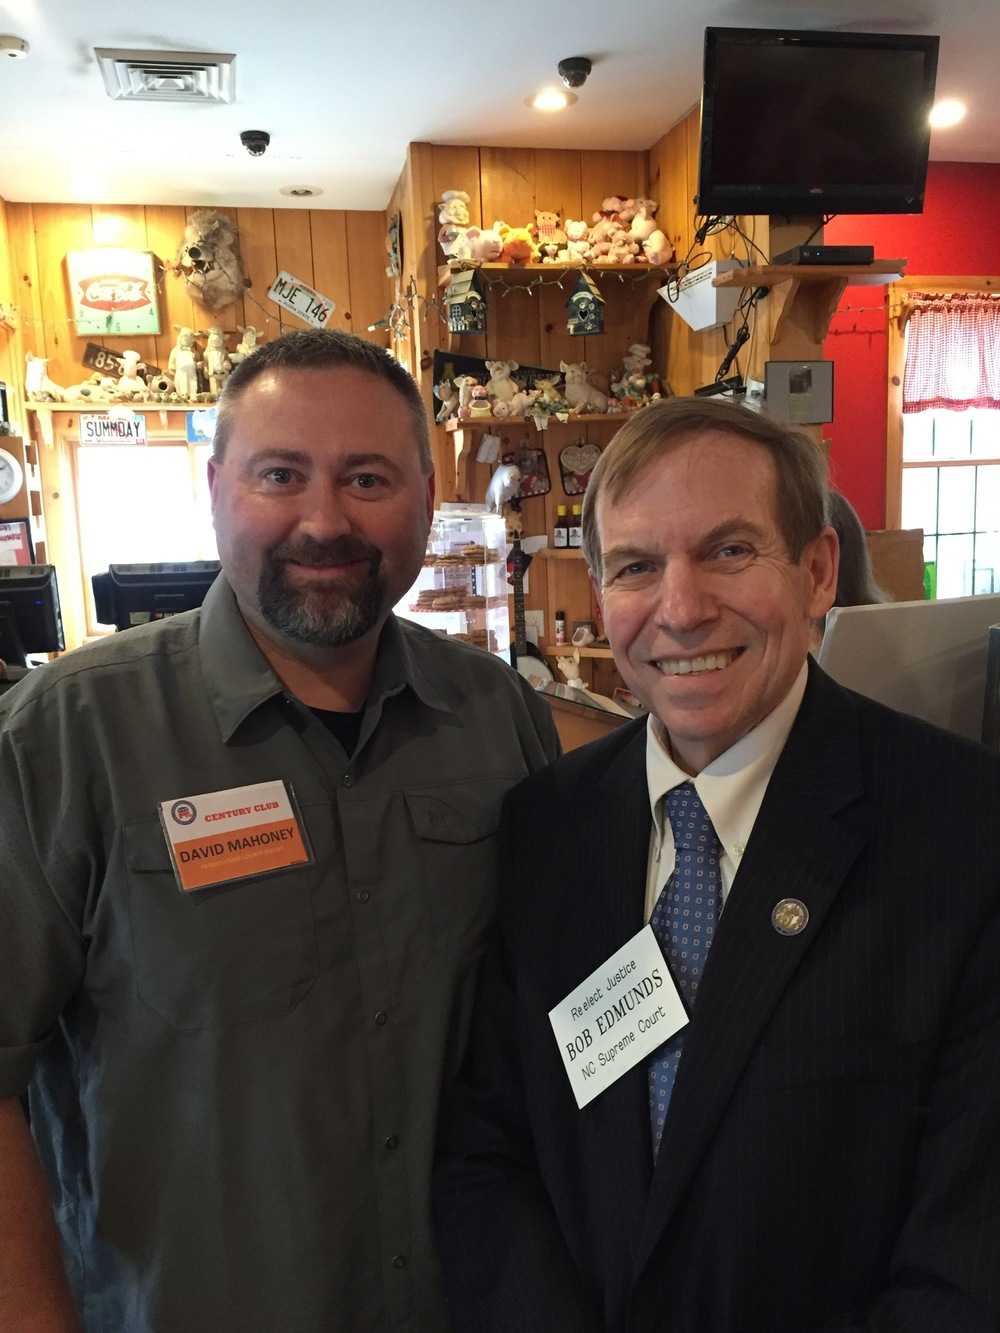 With Sheriff David Mahoney, Transylvania County.